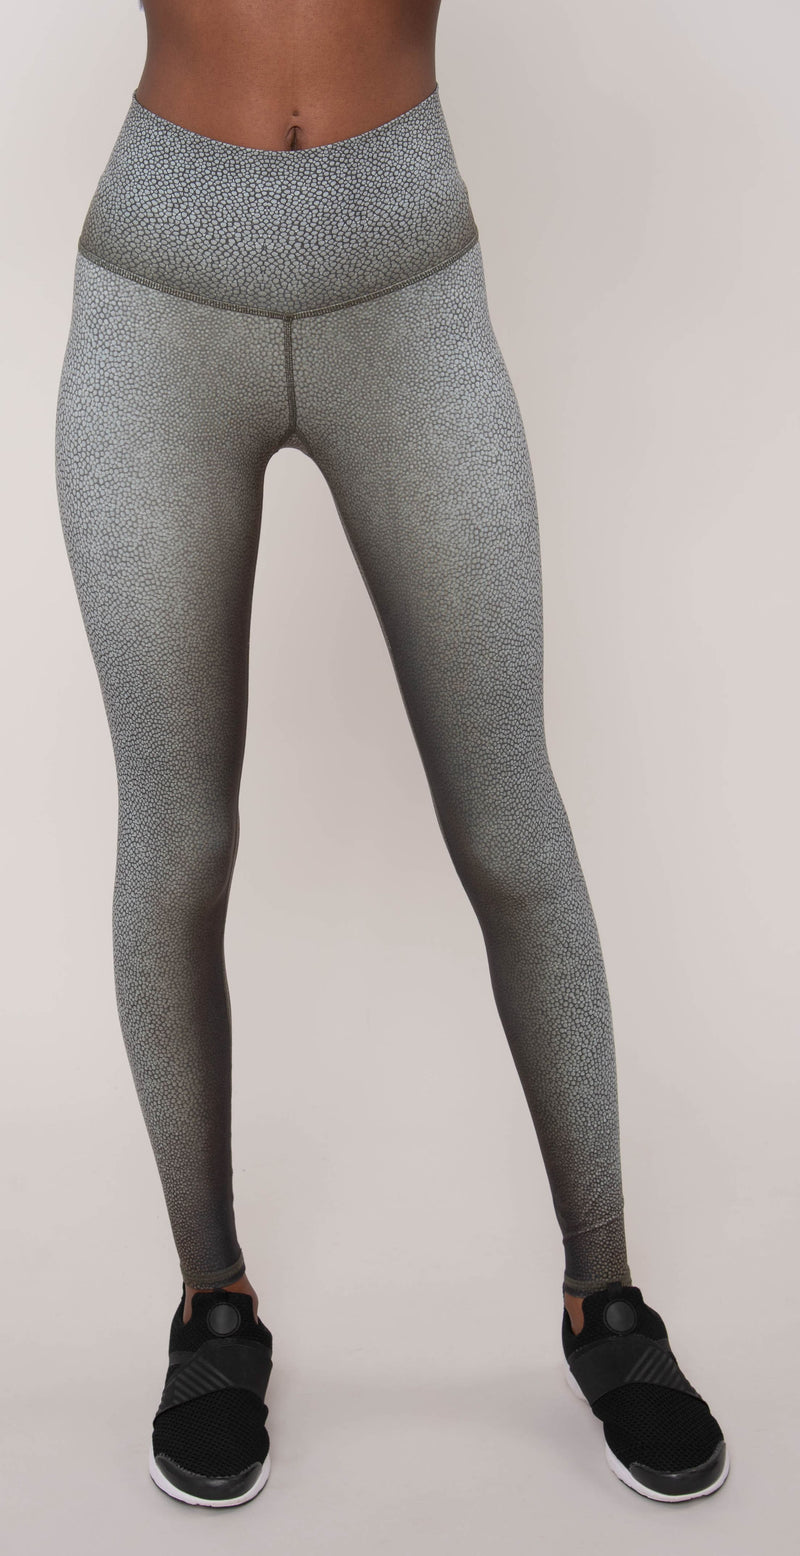 Niyama Sol Shagreen High Waisted Legging Fatigue